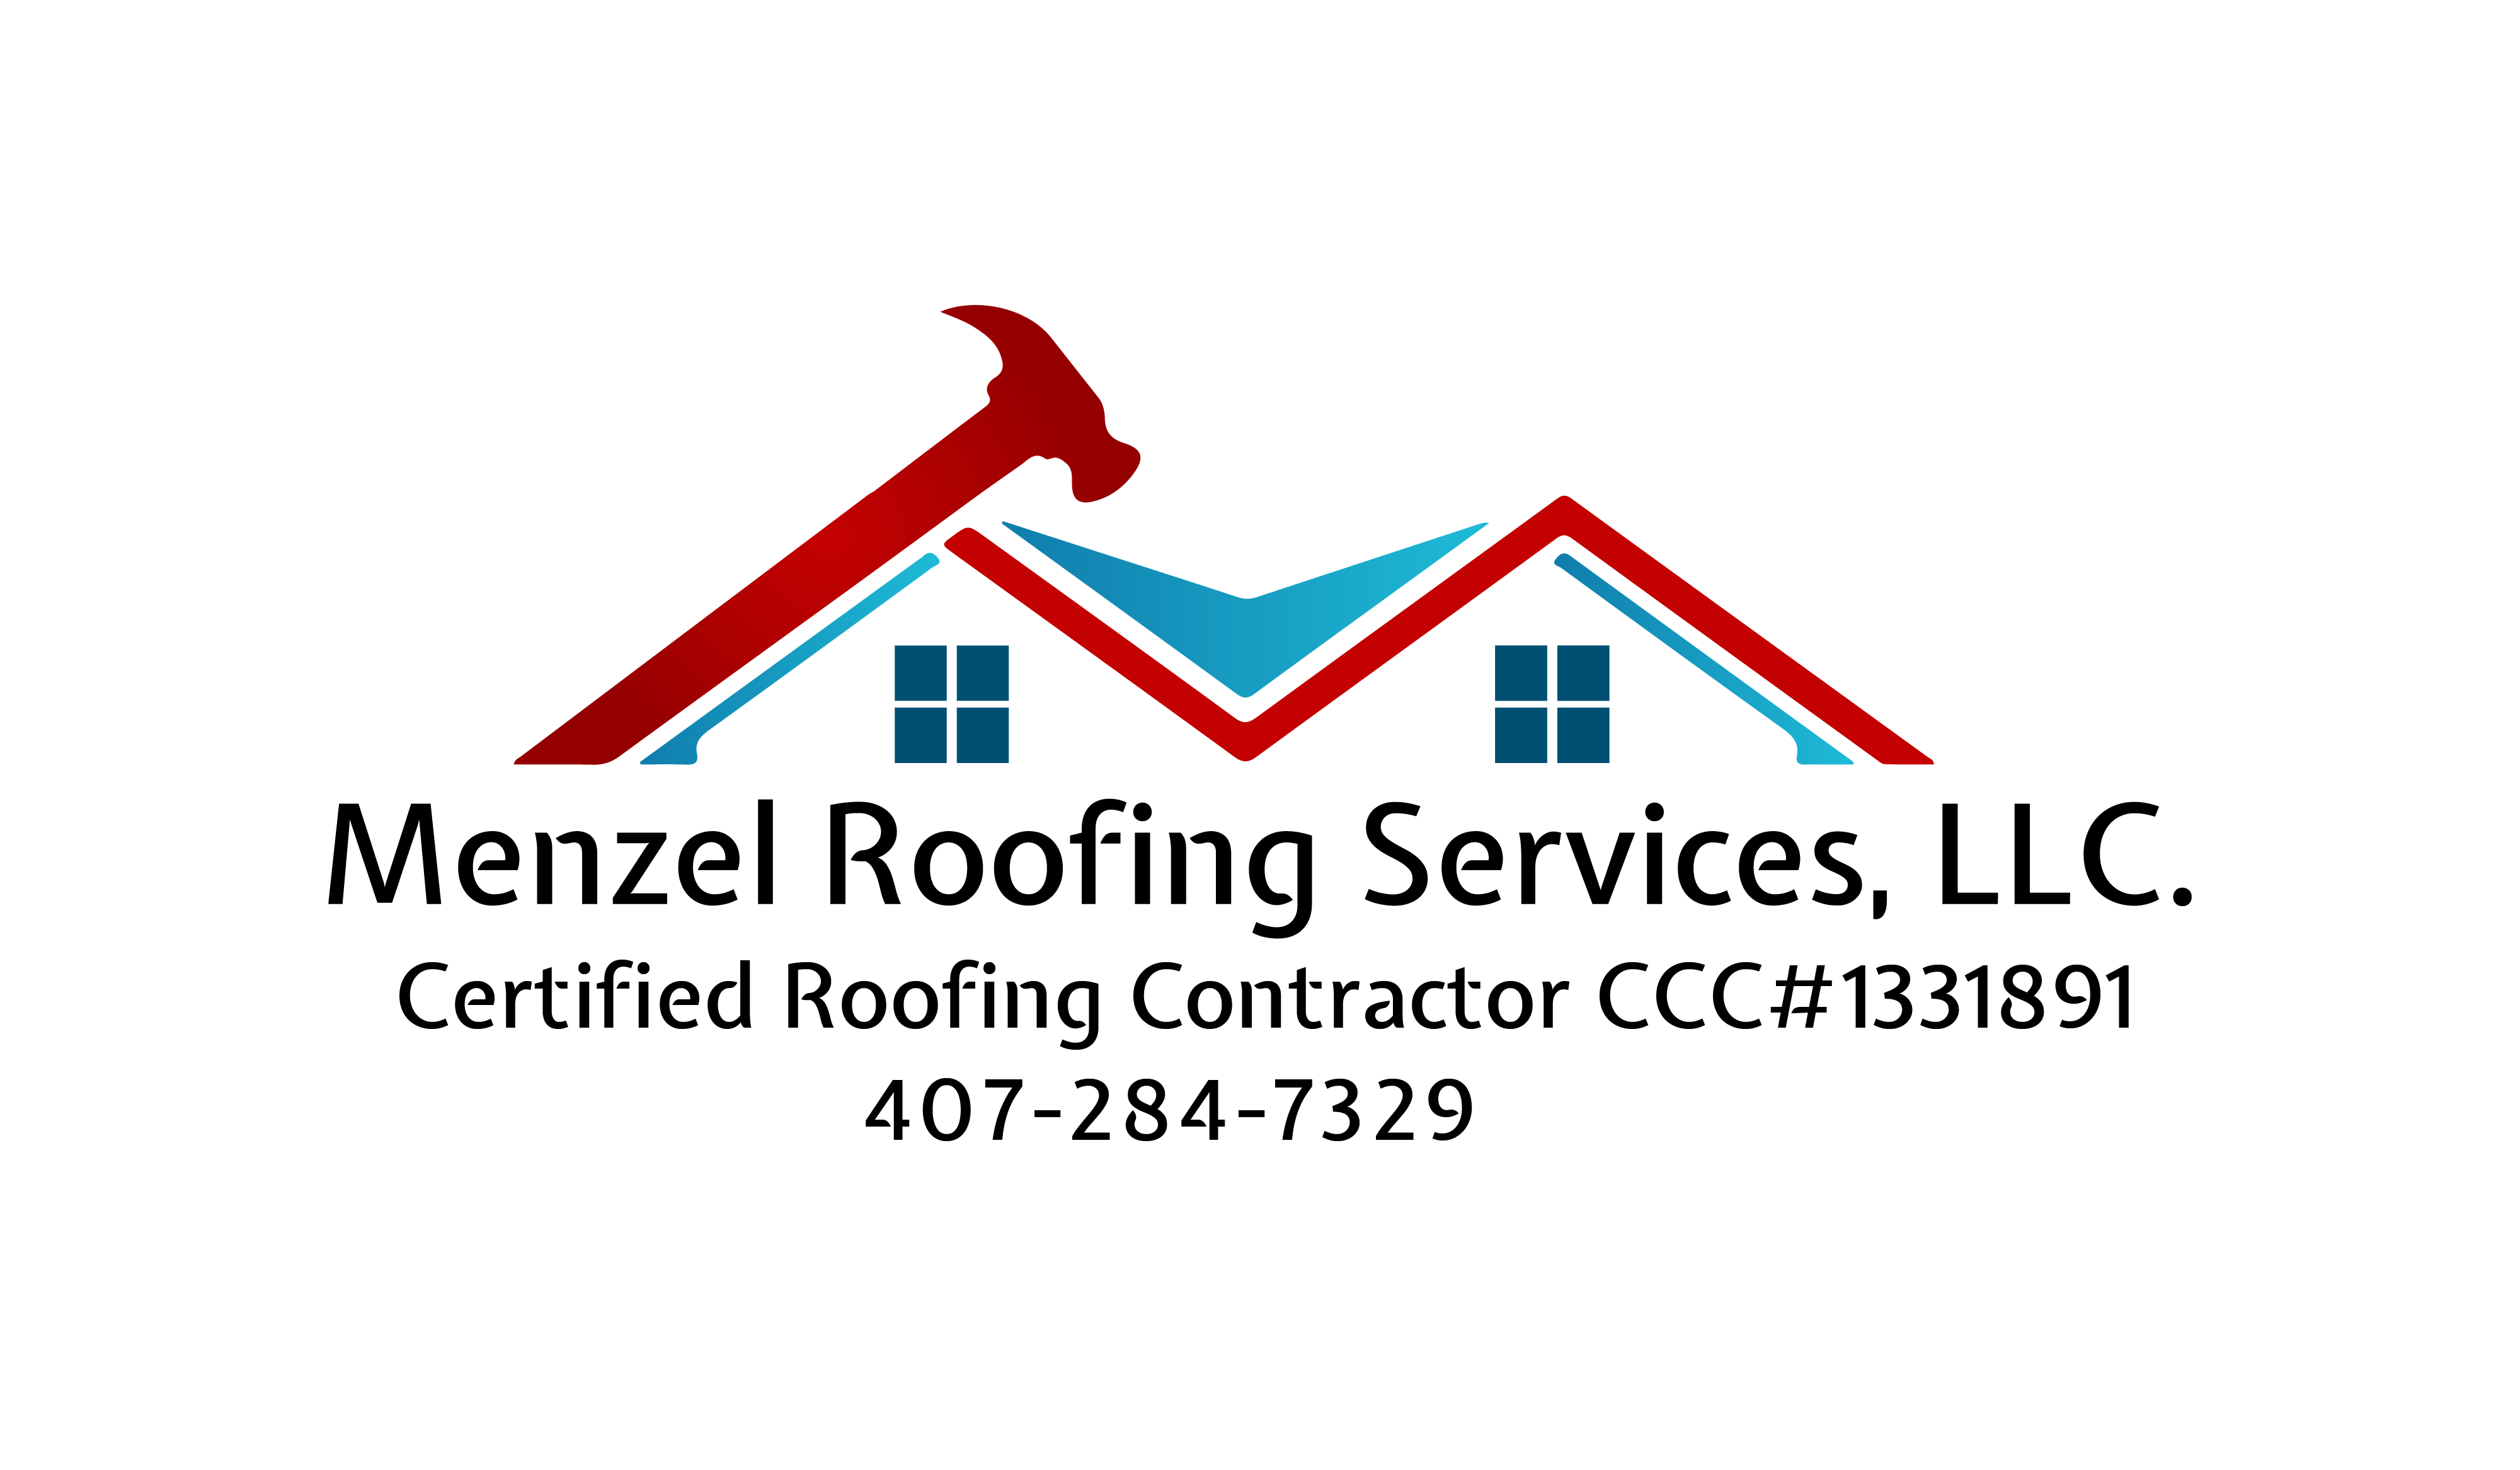 Menzel Roofing Services Llc Winter Springs Florida